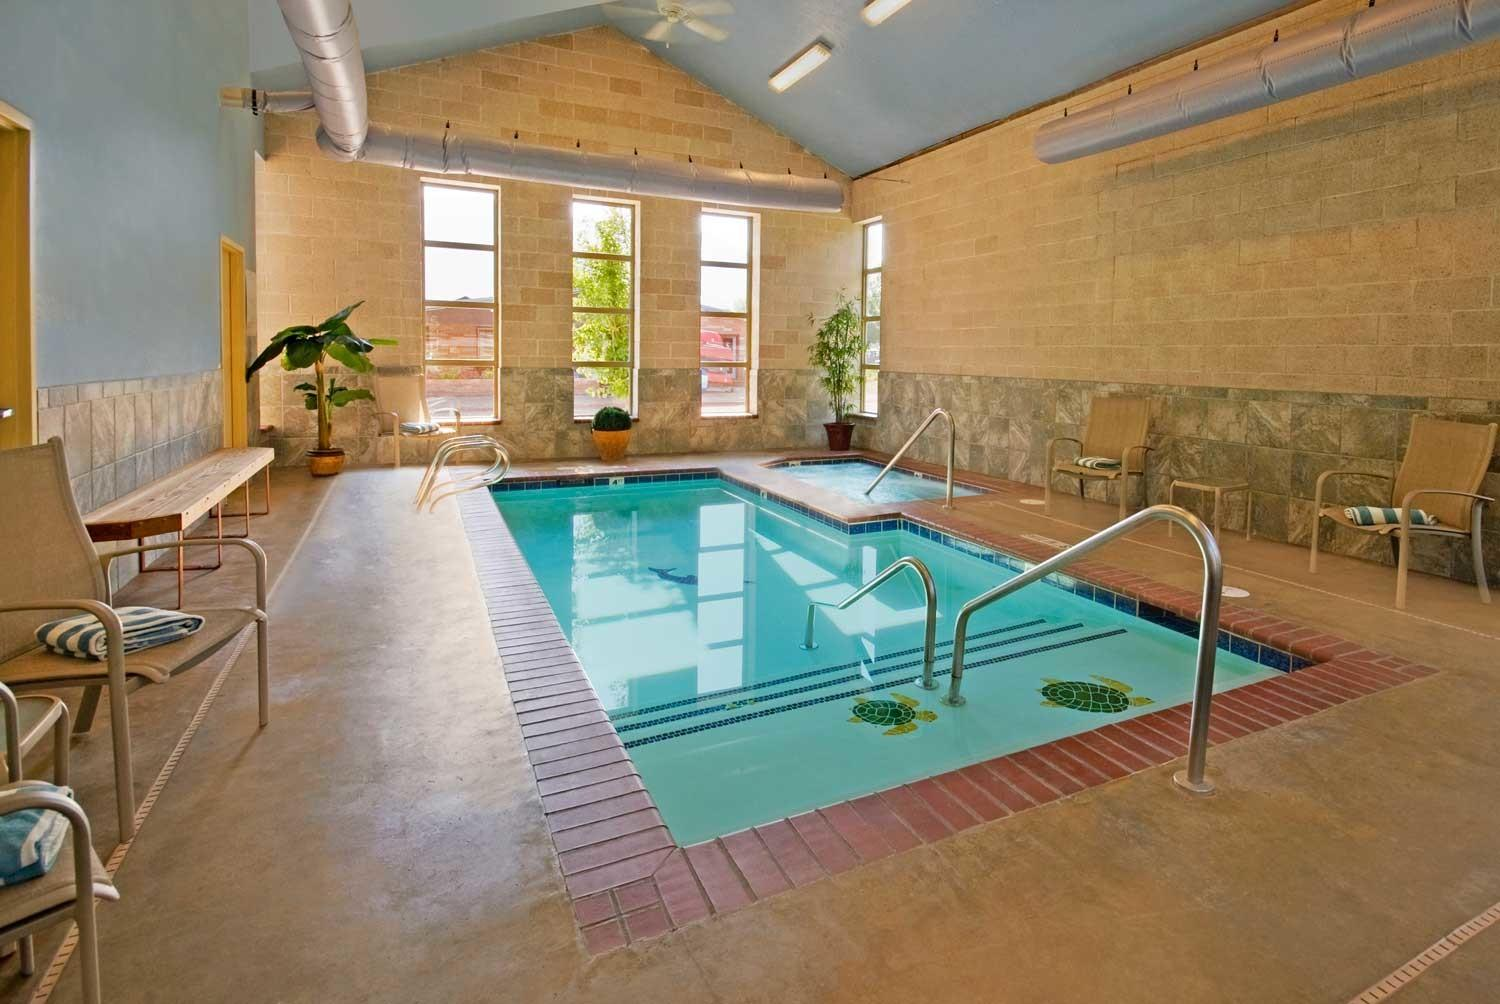 Indoor Pool House Designs Home Interior